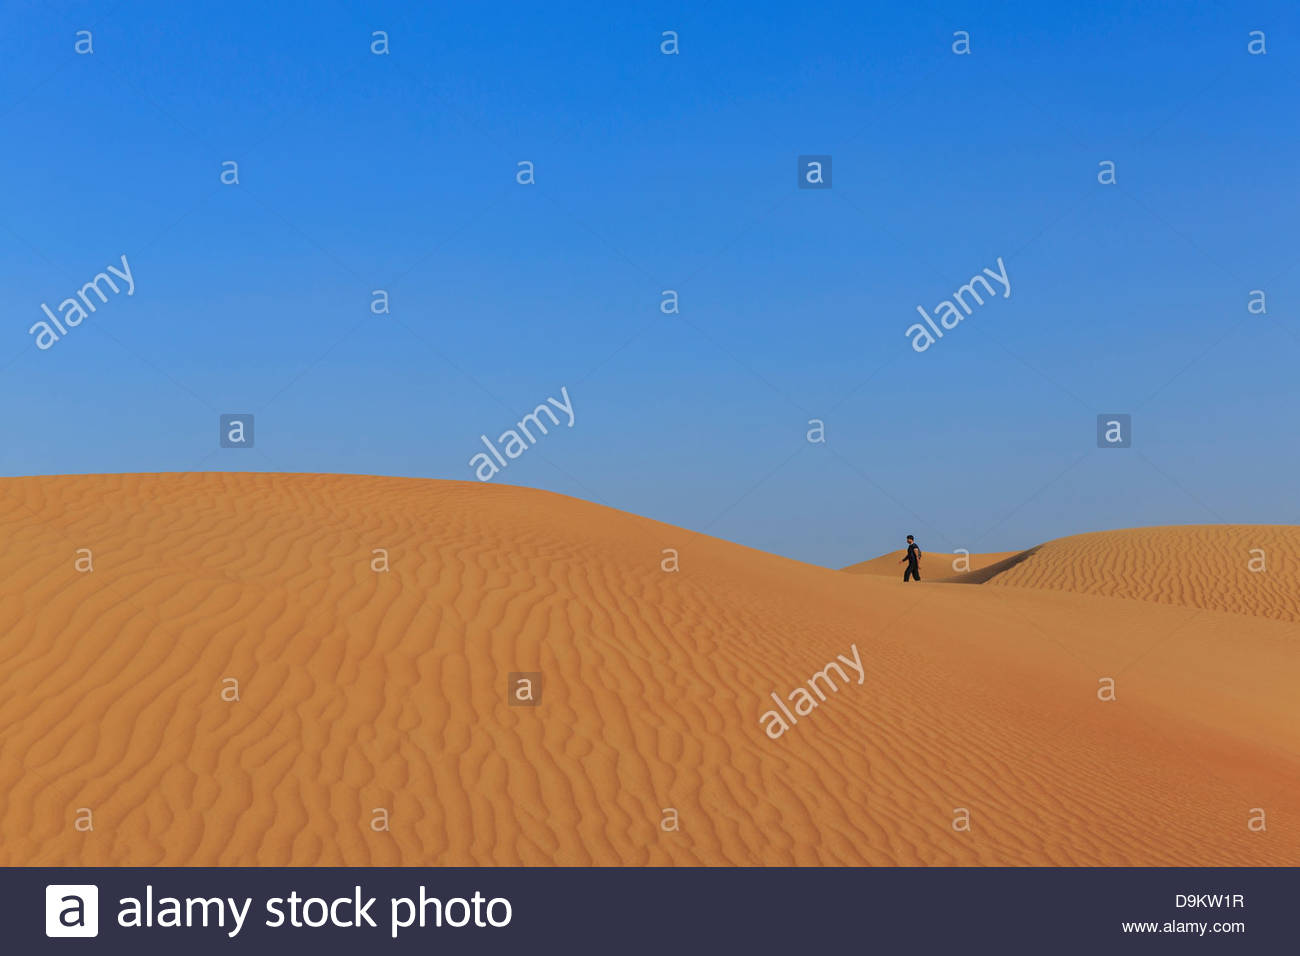 Man jogging in sand dunes in desert, Dubai, United Arab Emirates - Stock Image